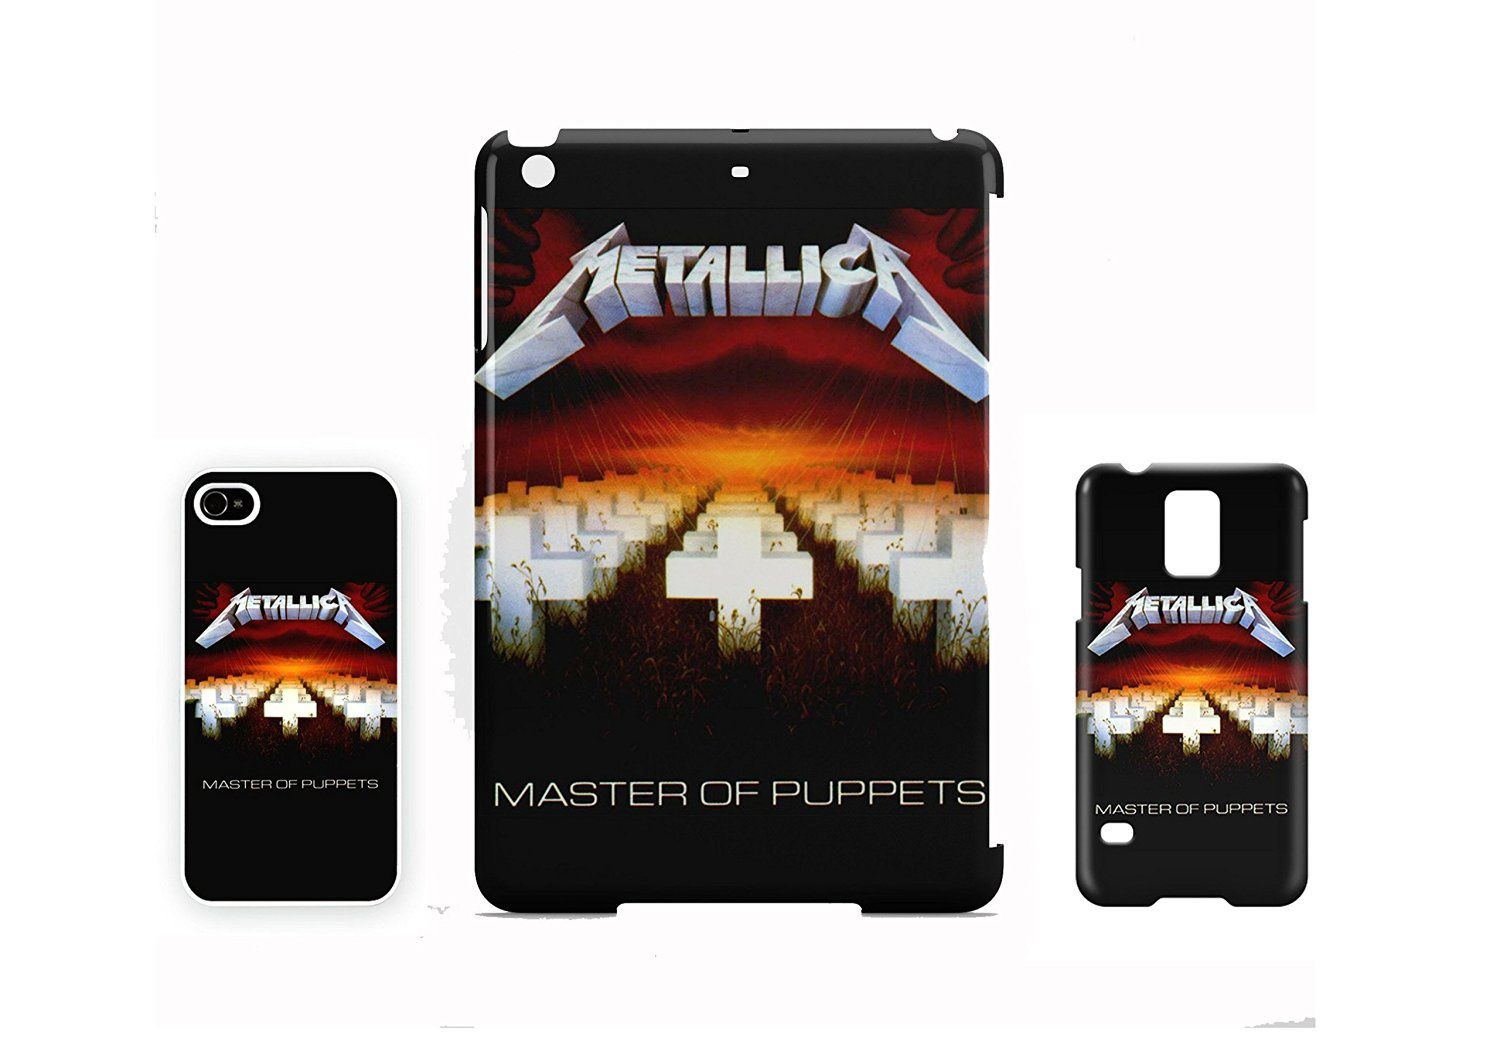 accessoire mobile coque smartphone metallica master of puppets le blog bon plan mobile bon. Black Bedroom Furniture Sets. Home Design Ideas